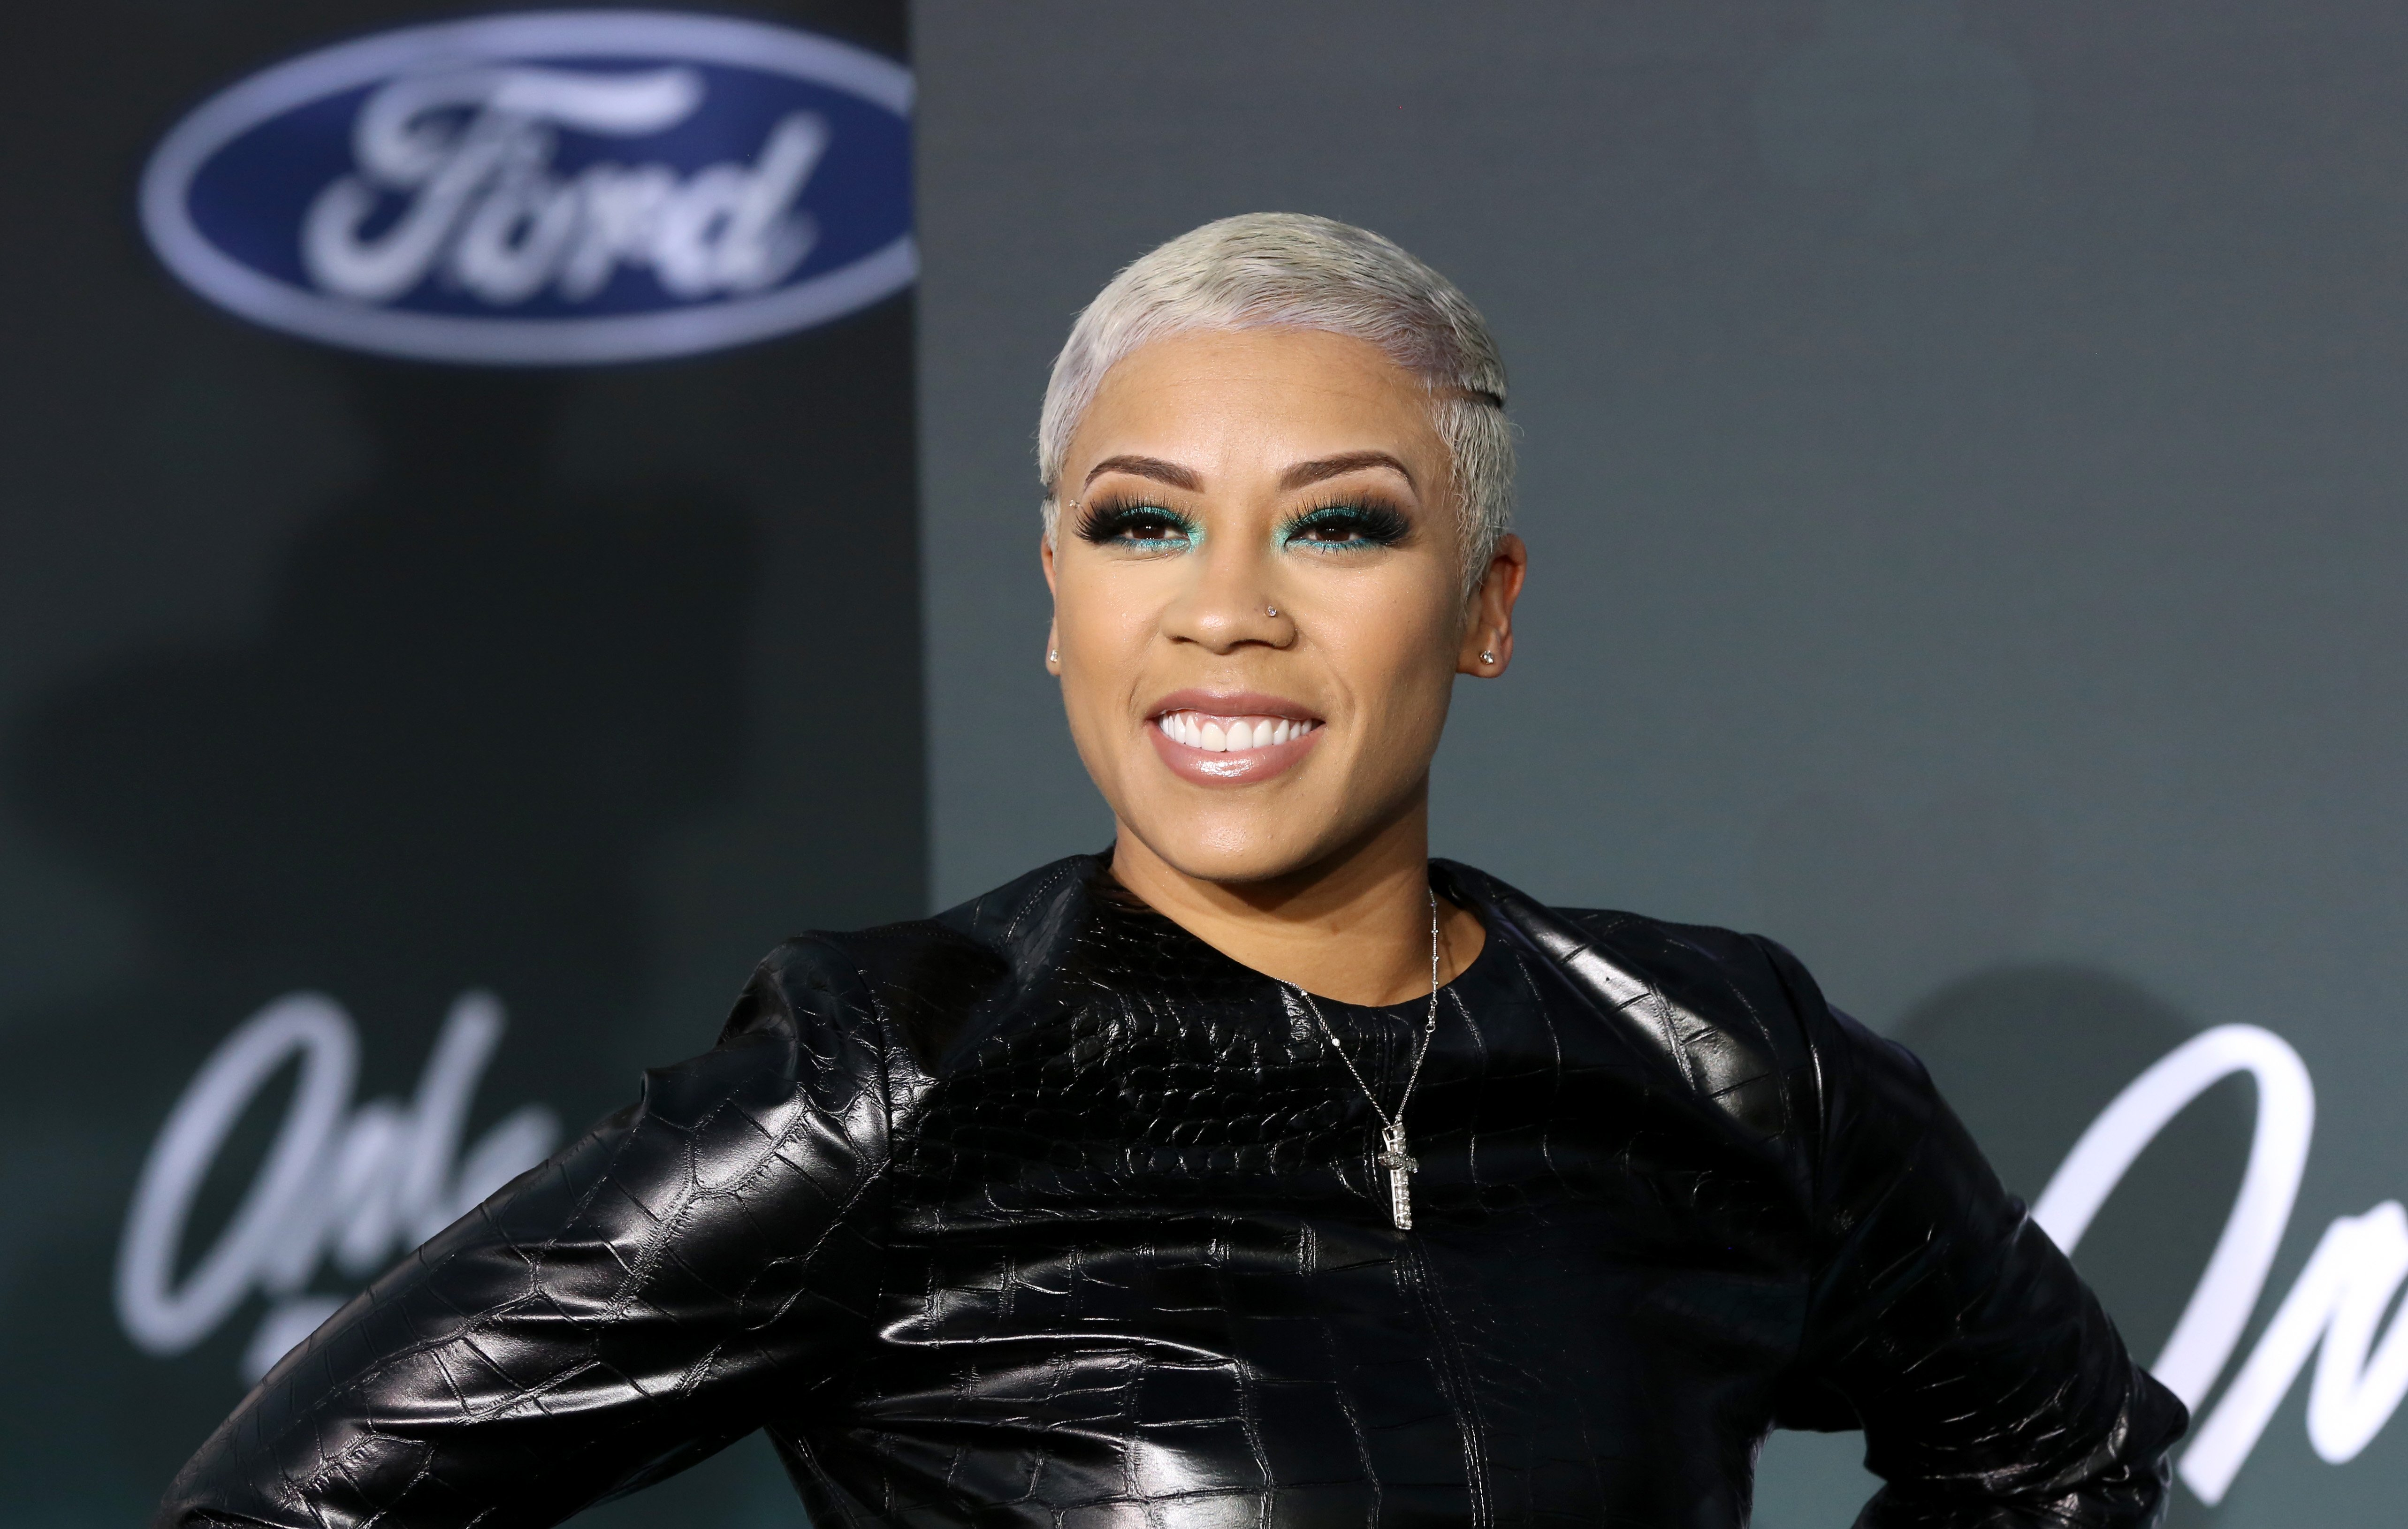 Keyshia Cole at the 2019 Soul Train Awards at the Orleans Arena on November 17, 2019 in Las Vegas, Nevada. | Source: Getty Images